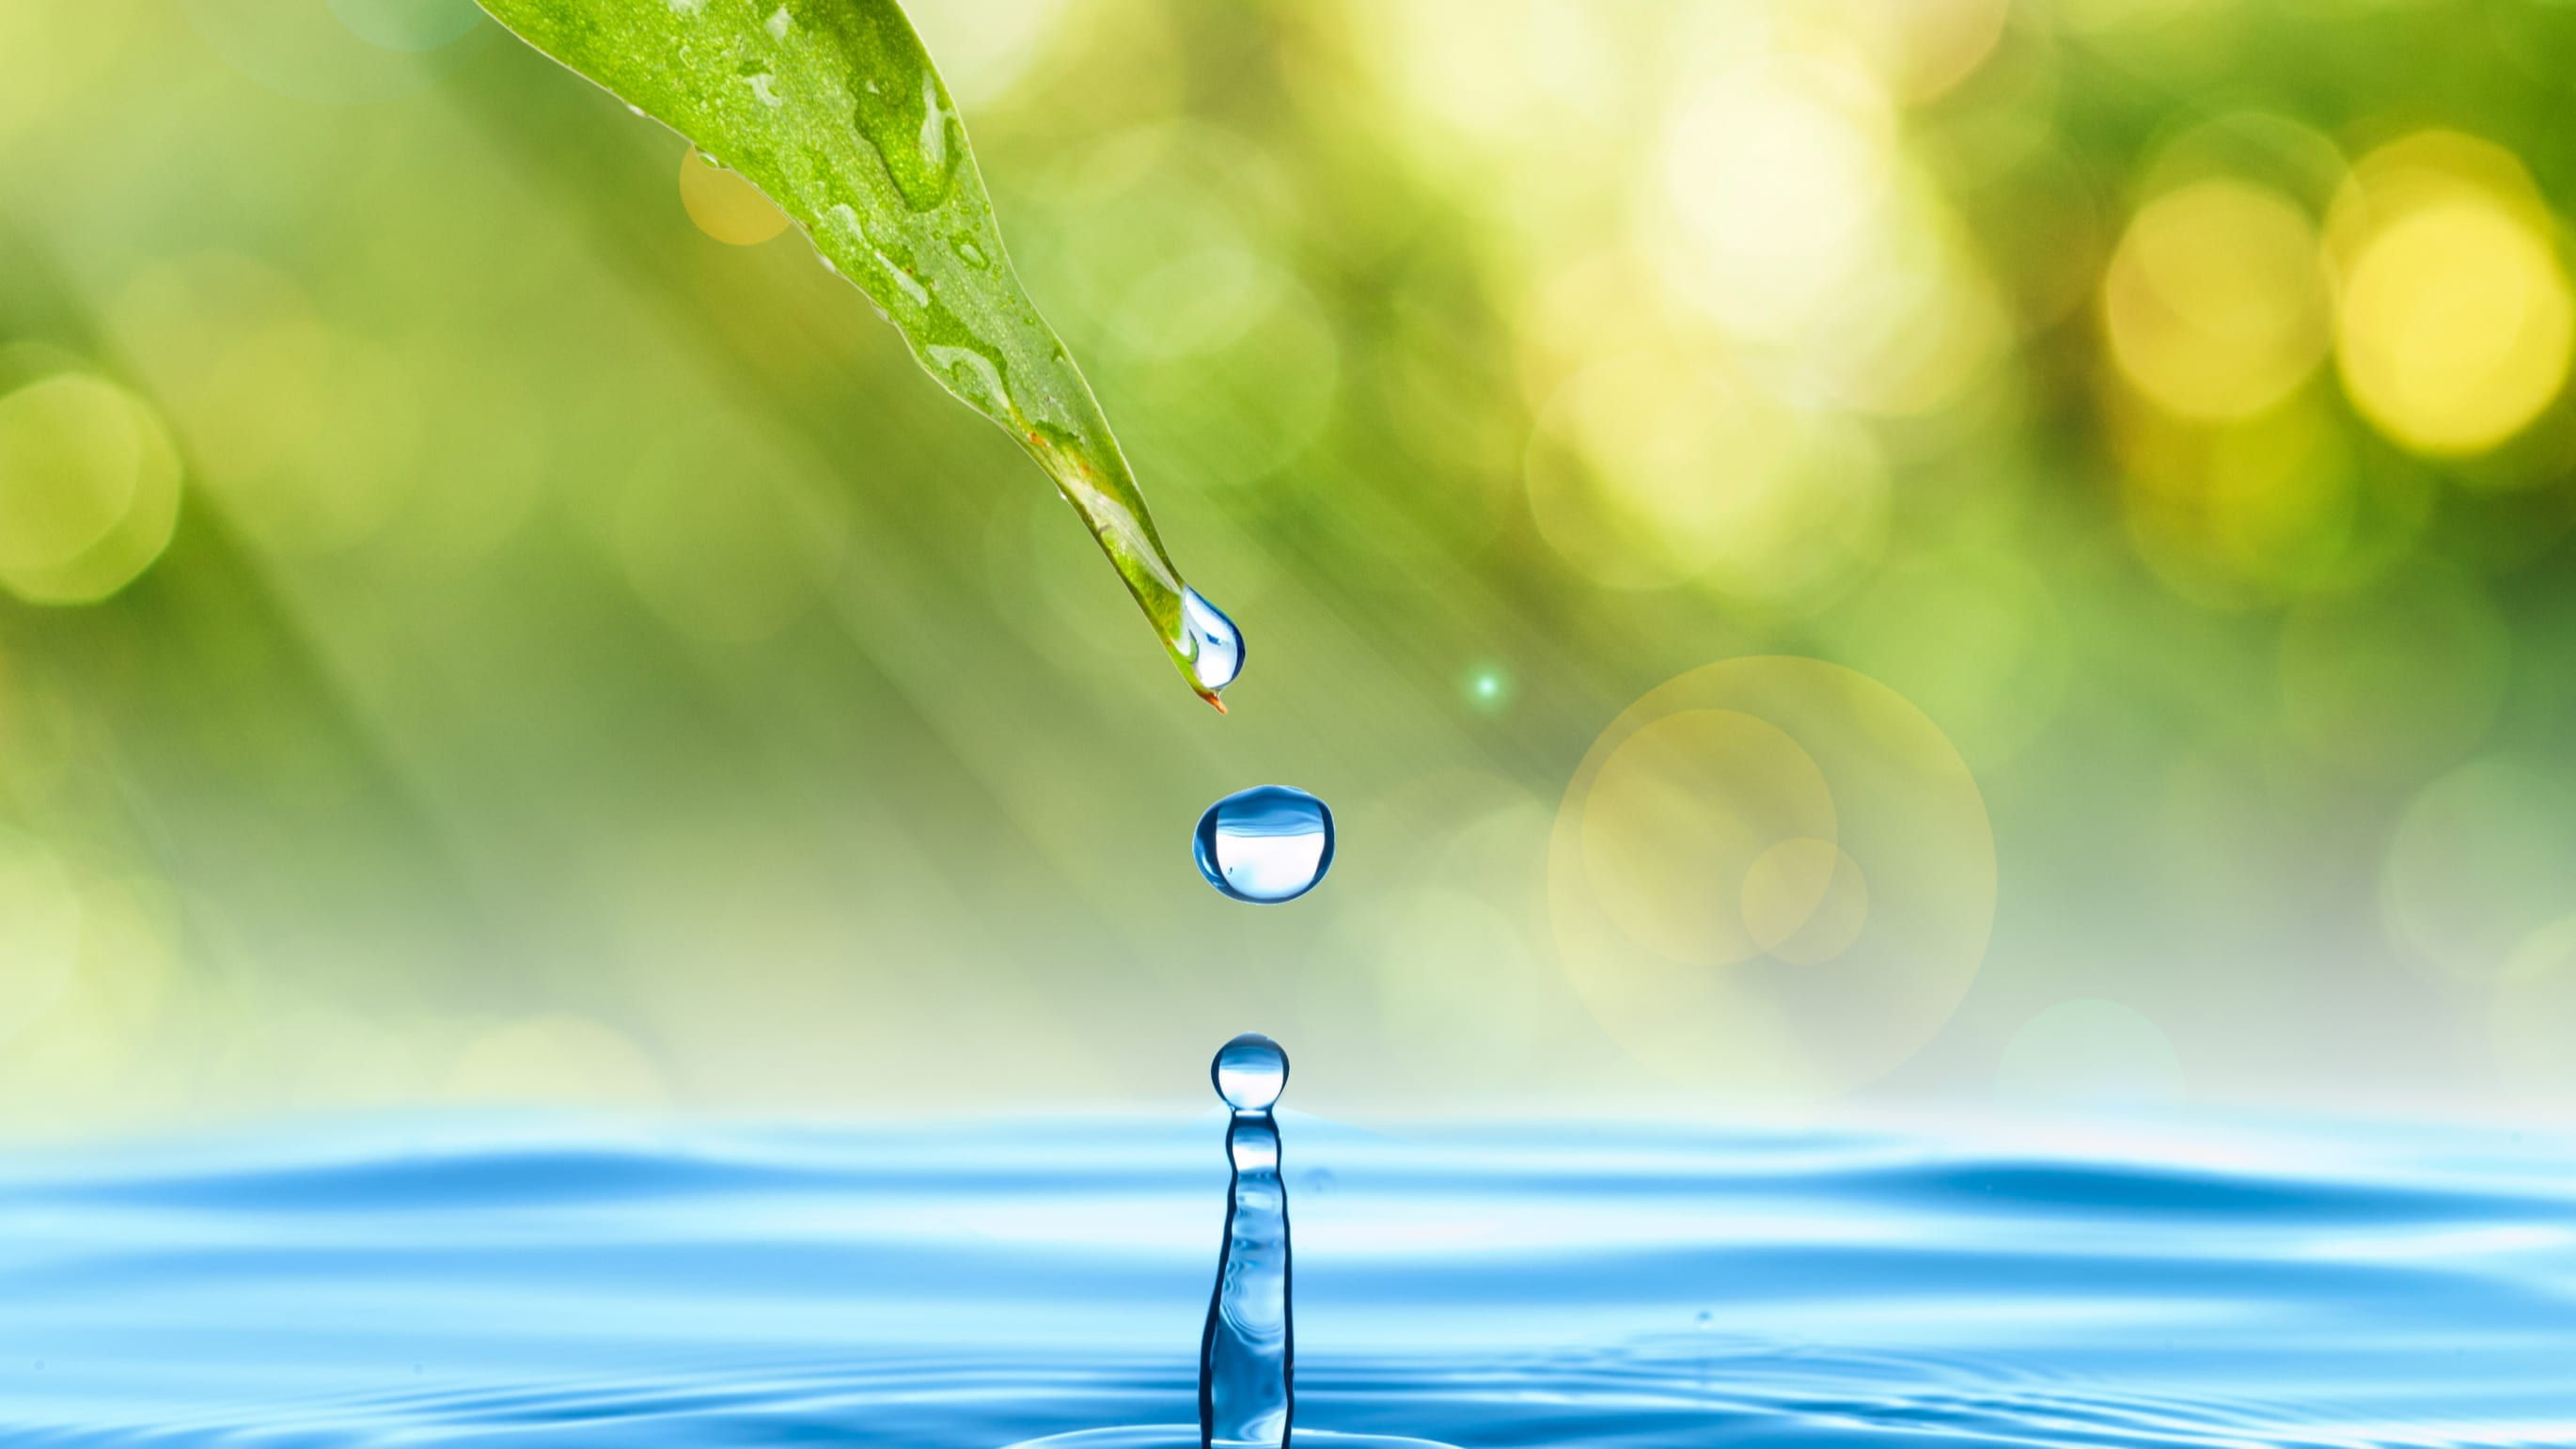 stock image of a water droplet